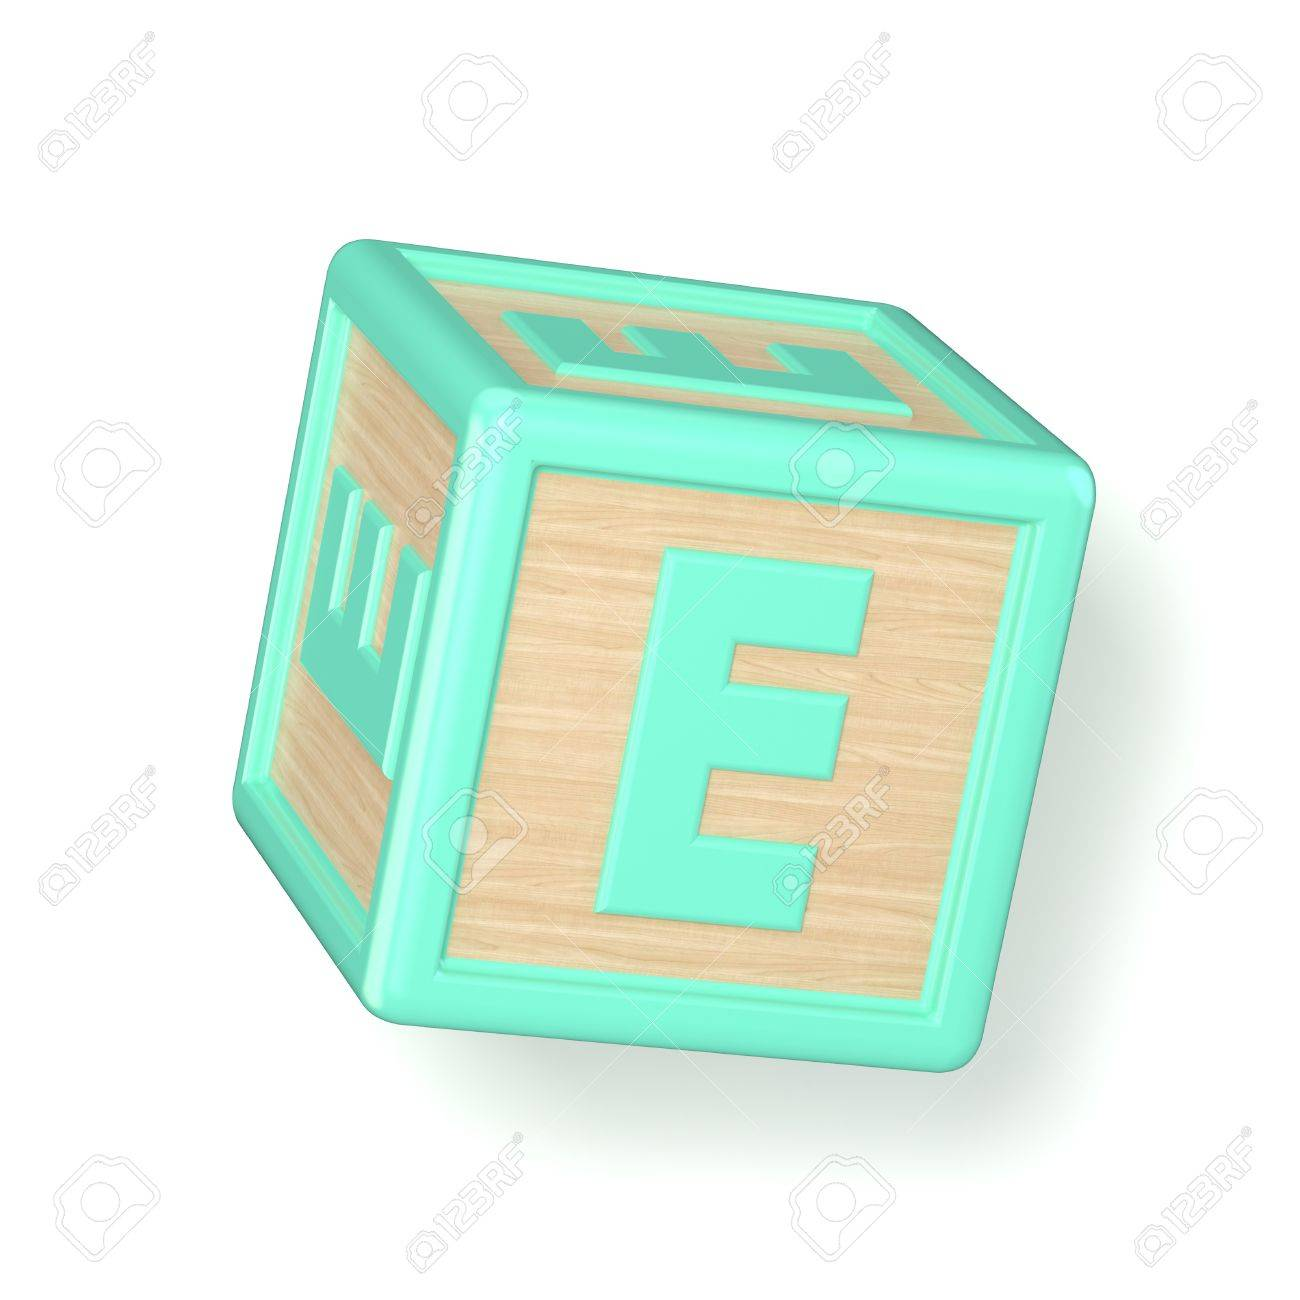 Letter E Wooden Alphabet Blocks Font Rotated 3d Render Illustration